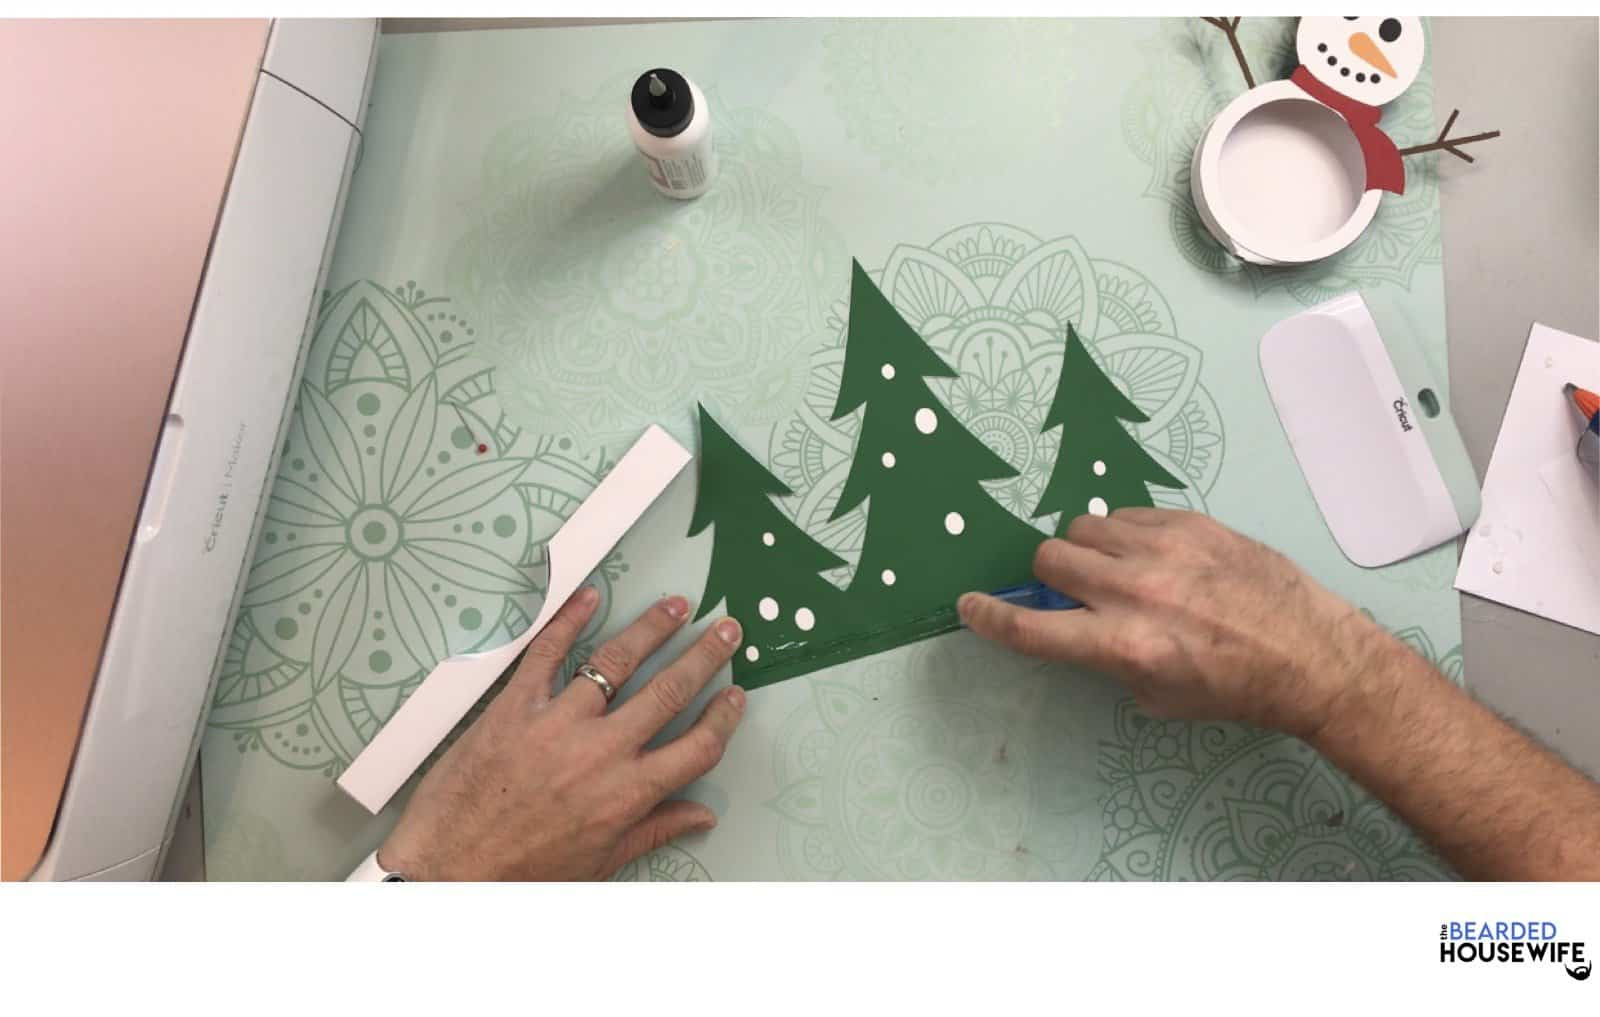 add glue or adhesive to the bottom of the trees